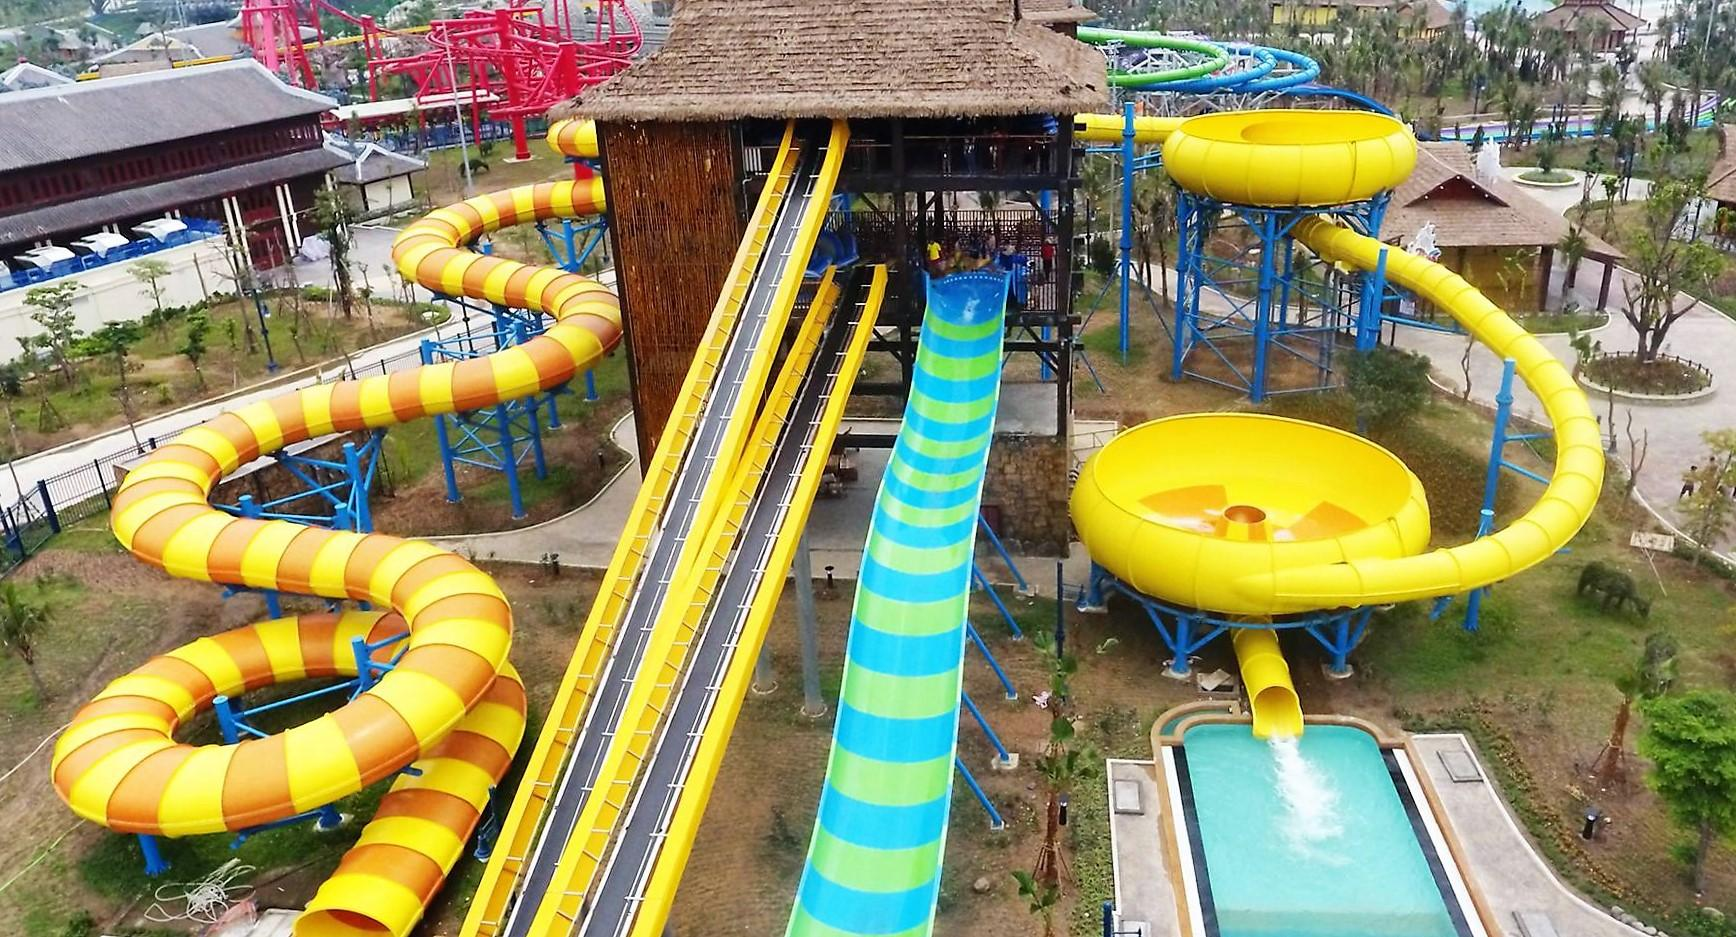 Аквапарк Тайфун (Typhoon Water Park), провинции Куангнинь